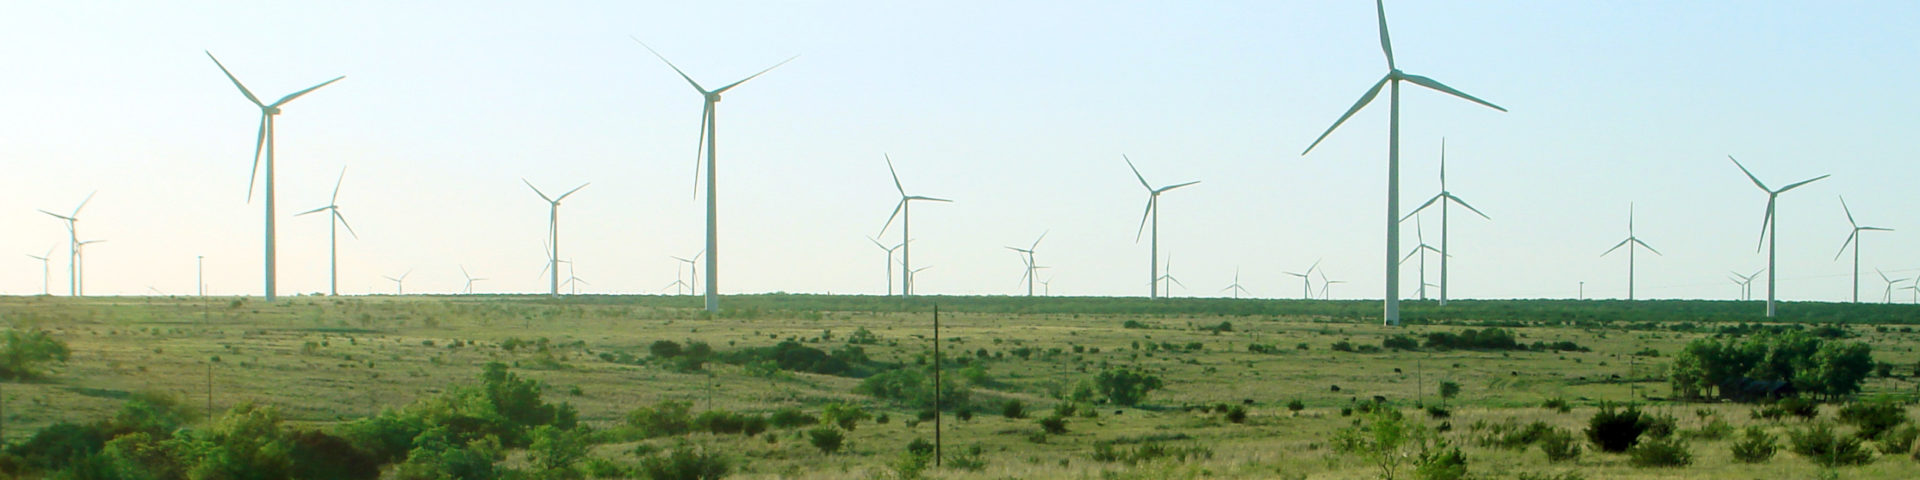 Sweetwater Texas Wind Farm